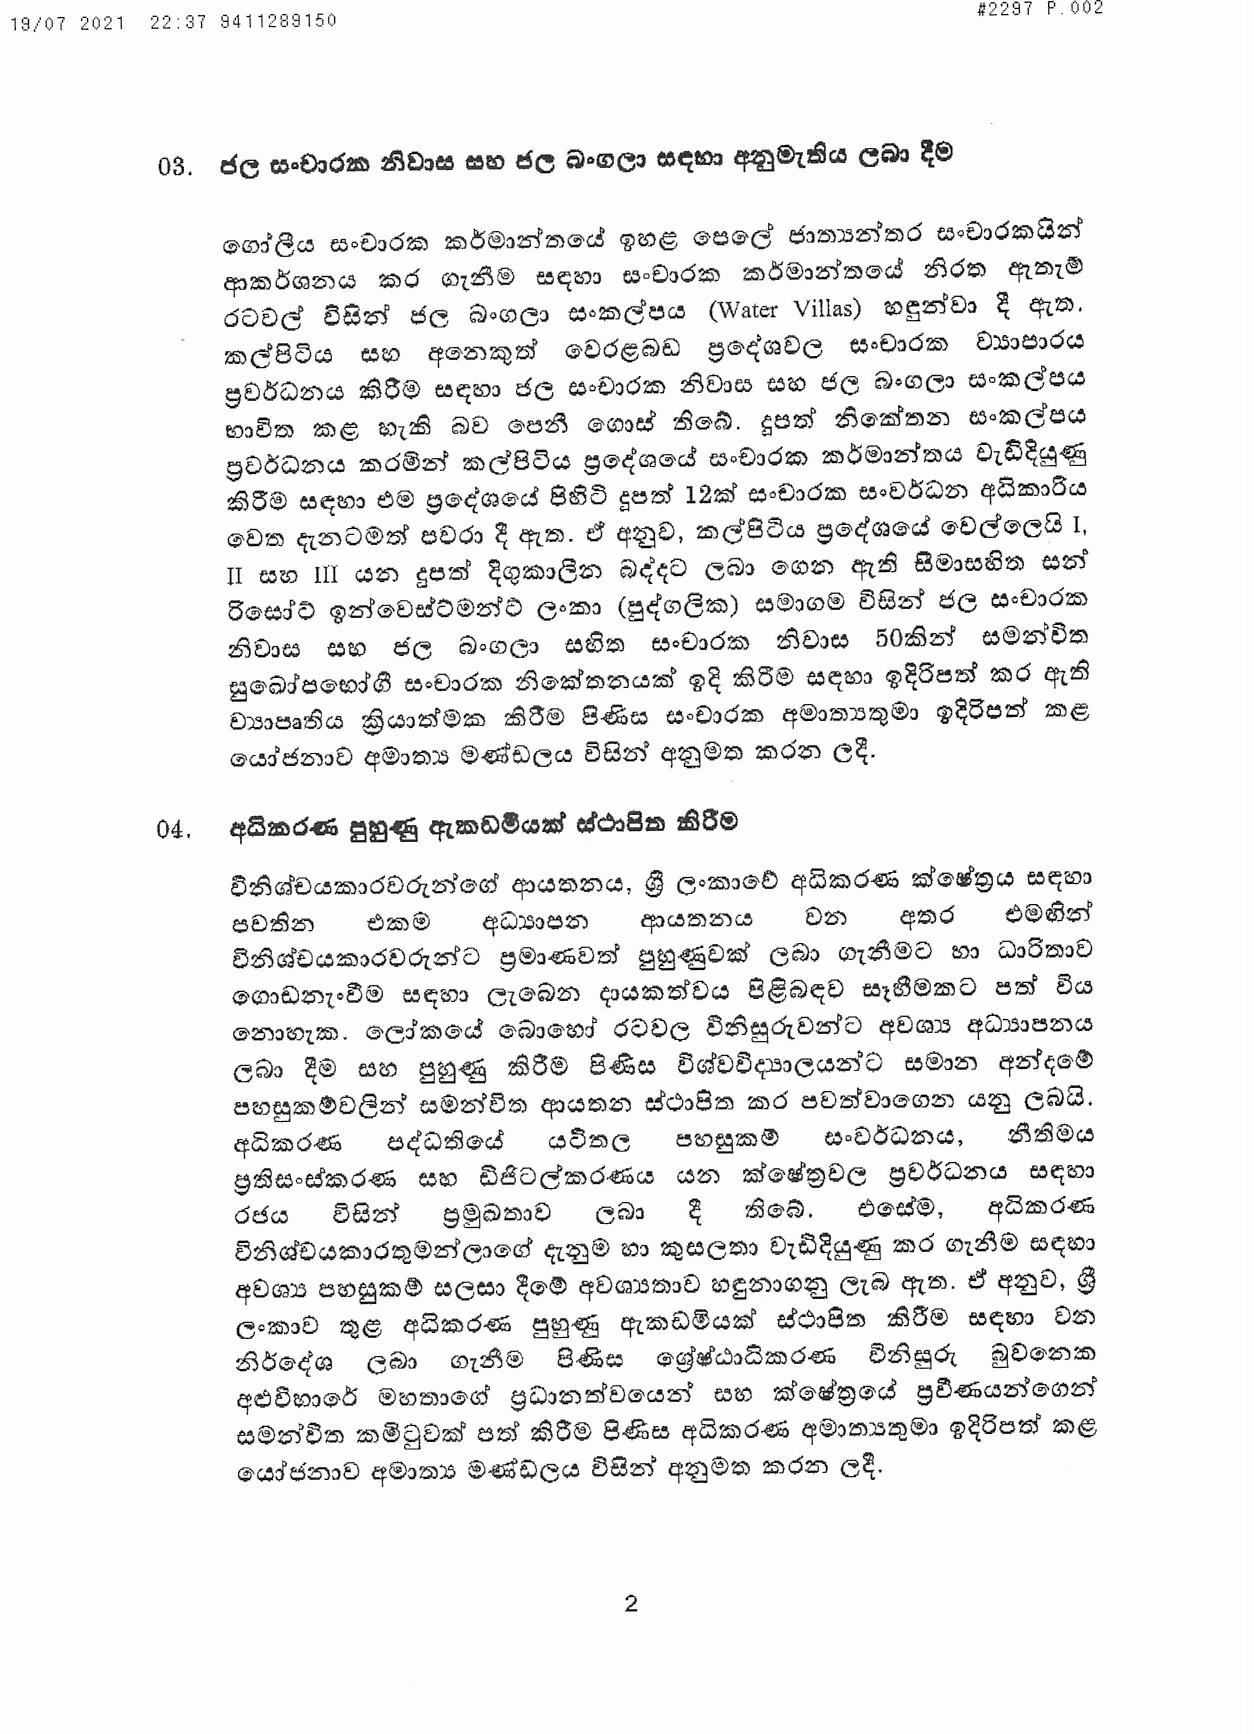 Cabinet Decision on 19.07.2021 page 002